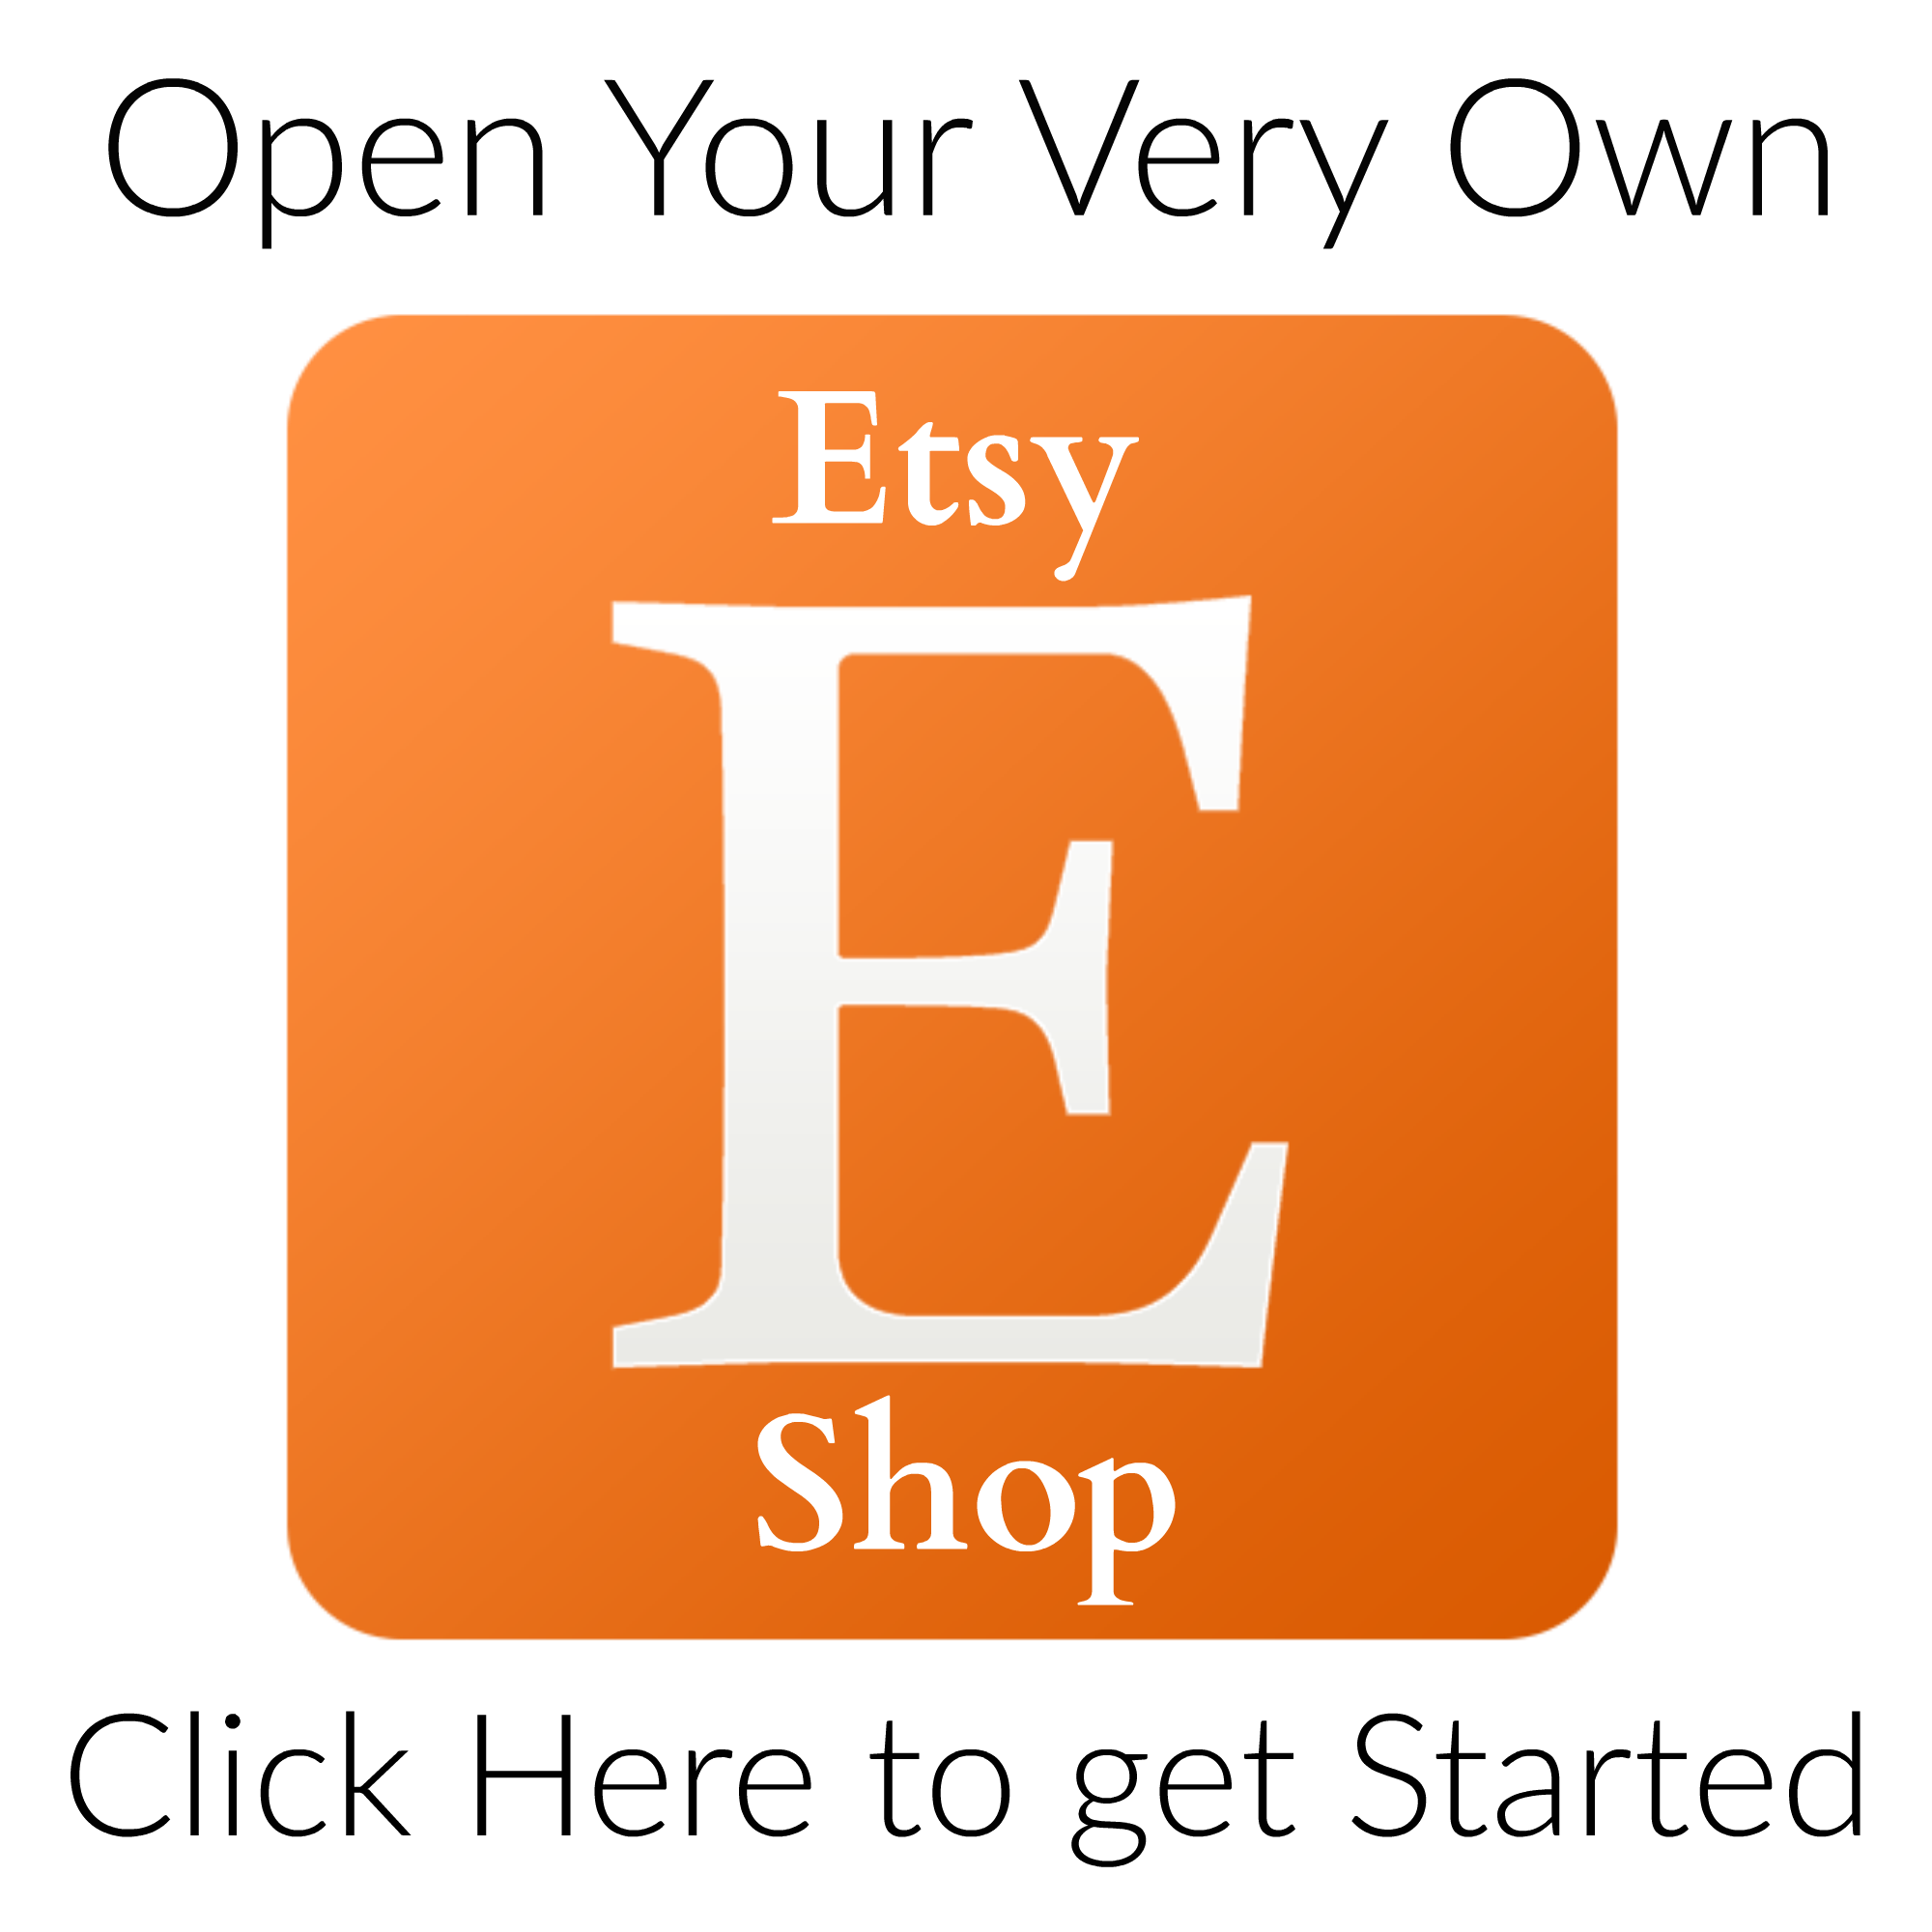 Etsy Logo Inventory management software E.